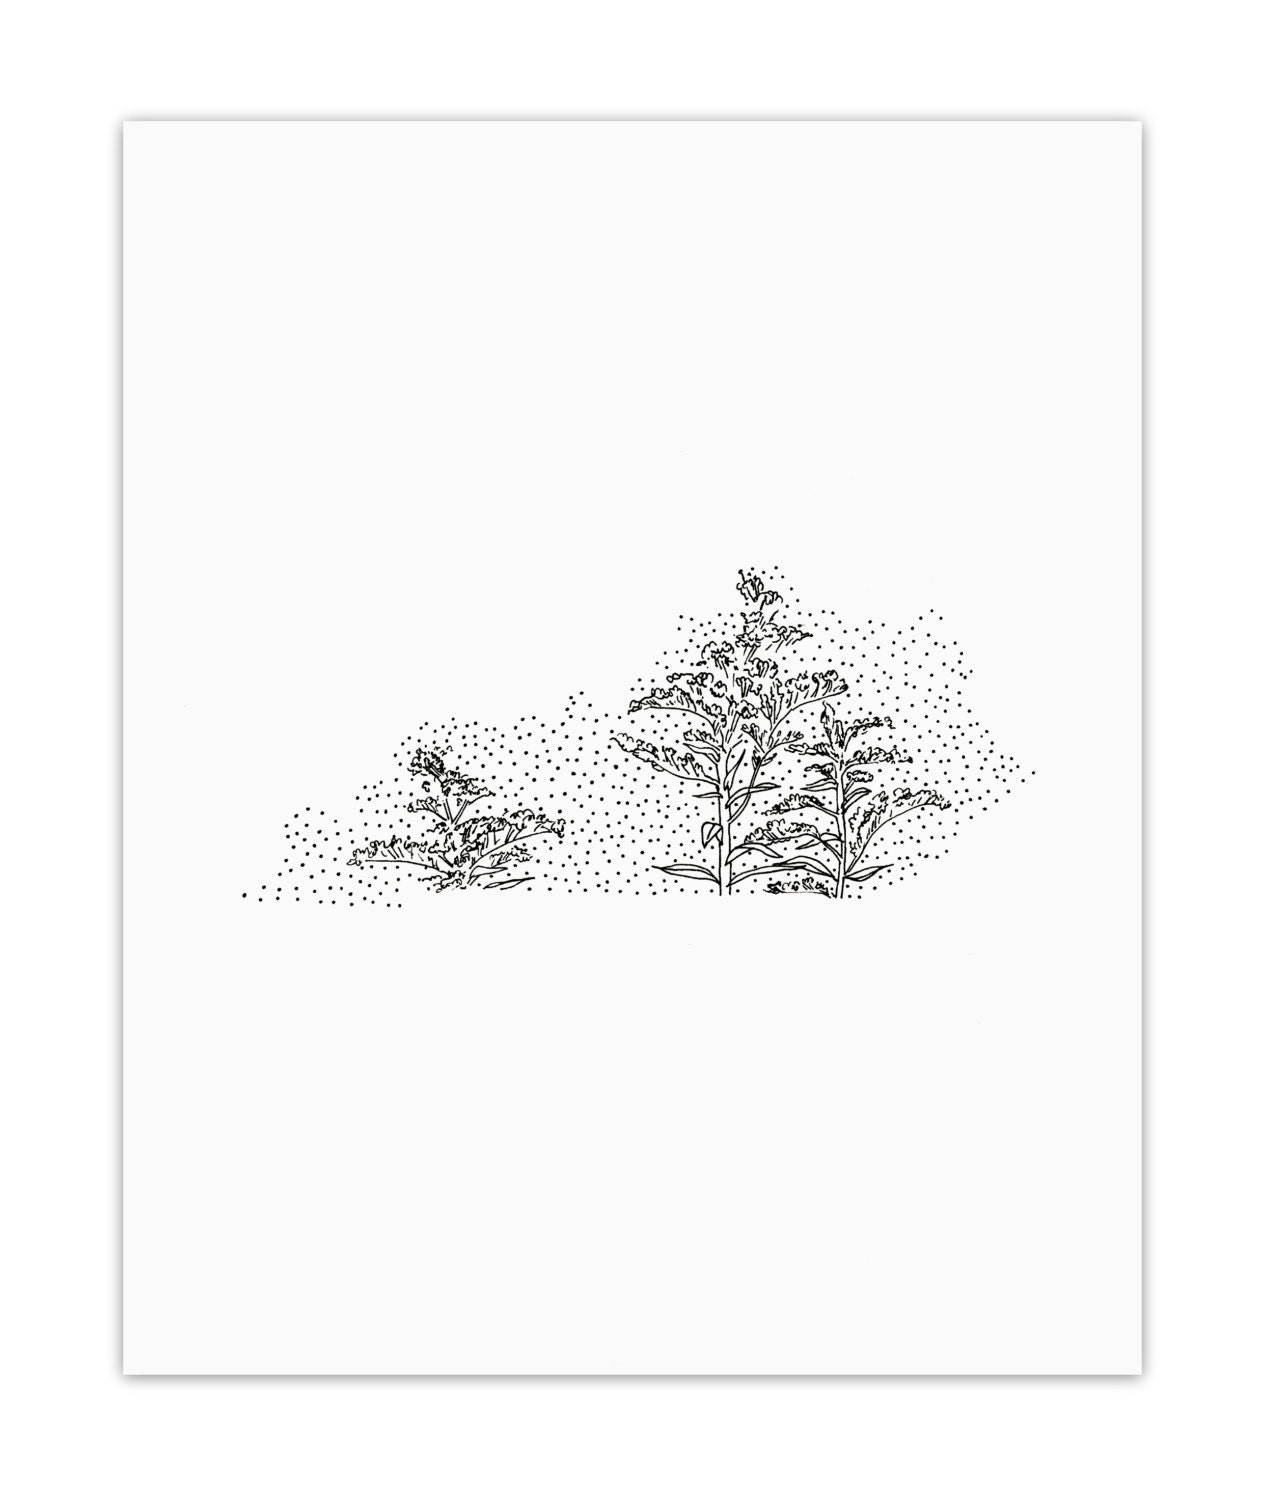 Kentucky Golden Rod State Flower Drawing Giclee